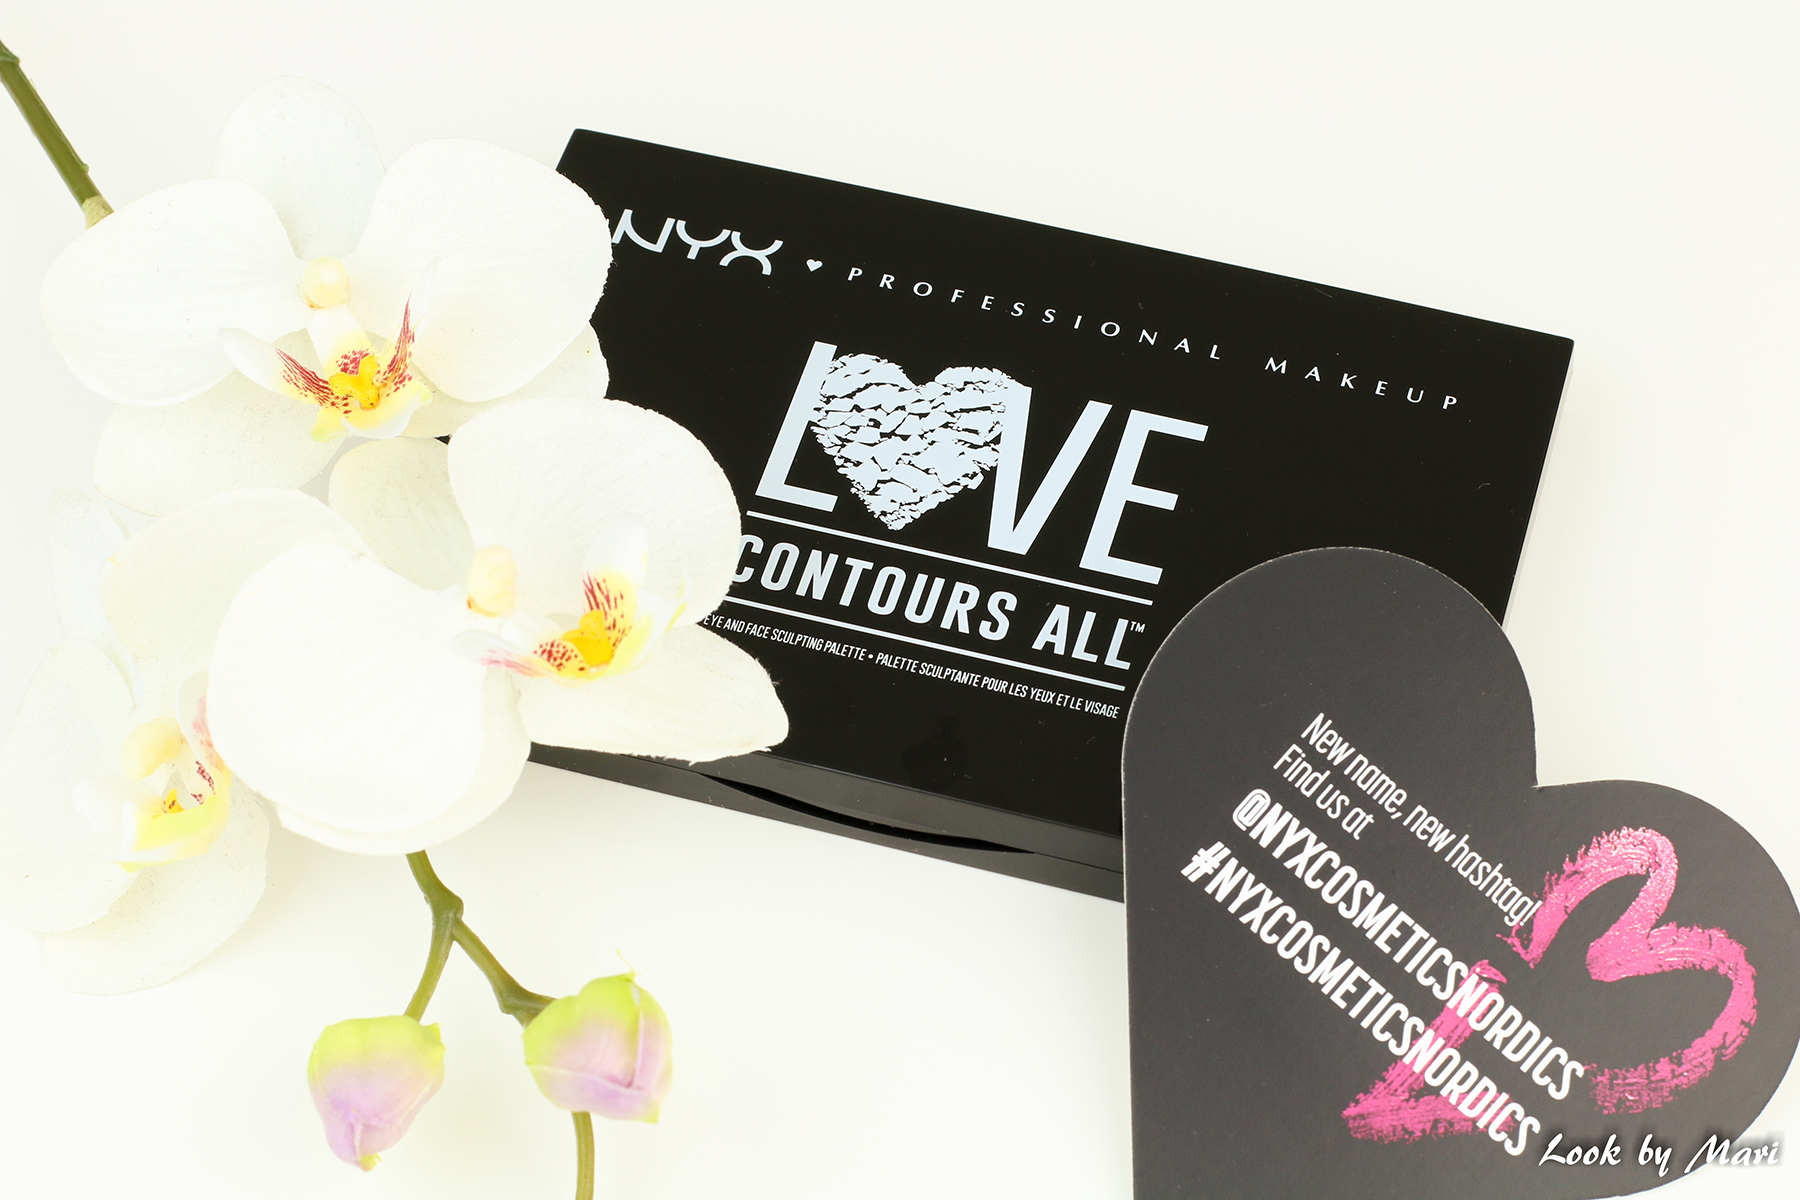 10 nyx love contours all palette review swatches colors shades is it good worth it